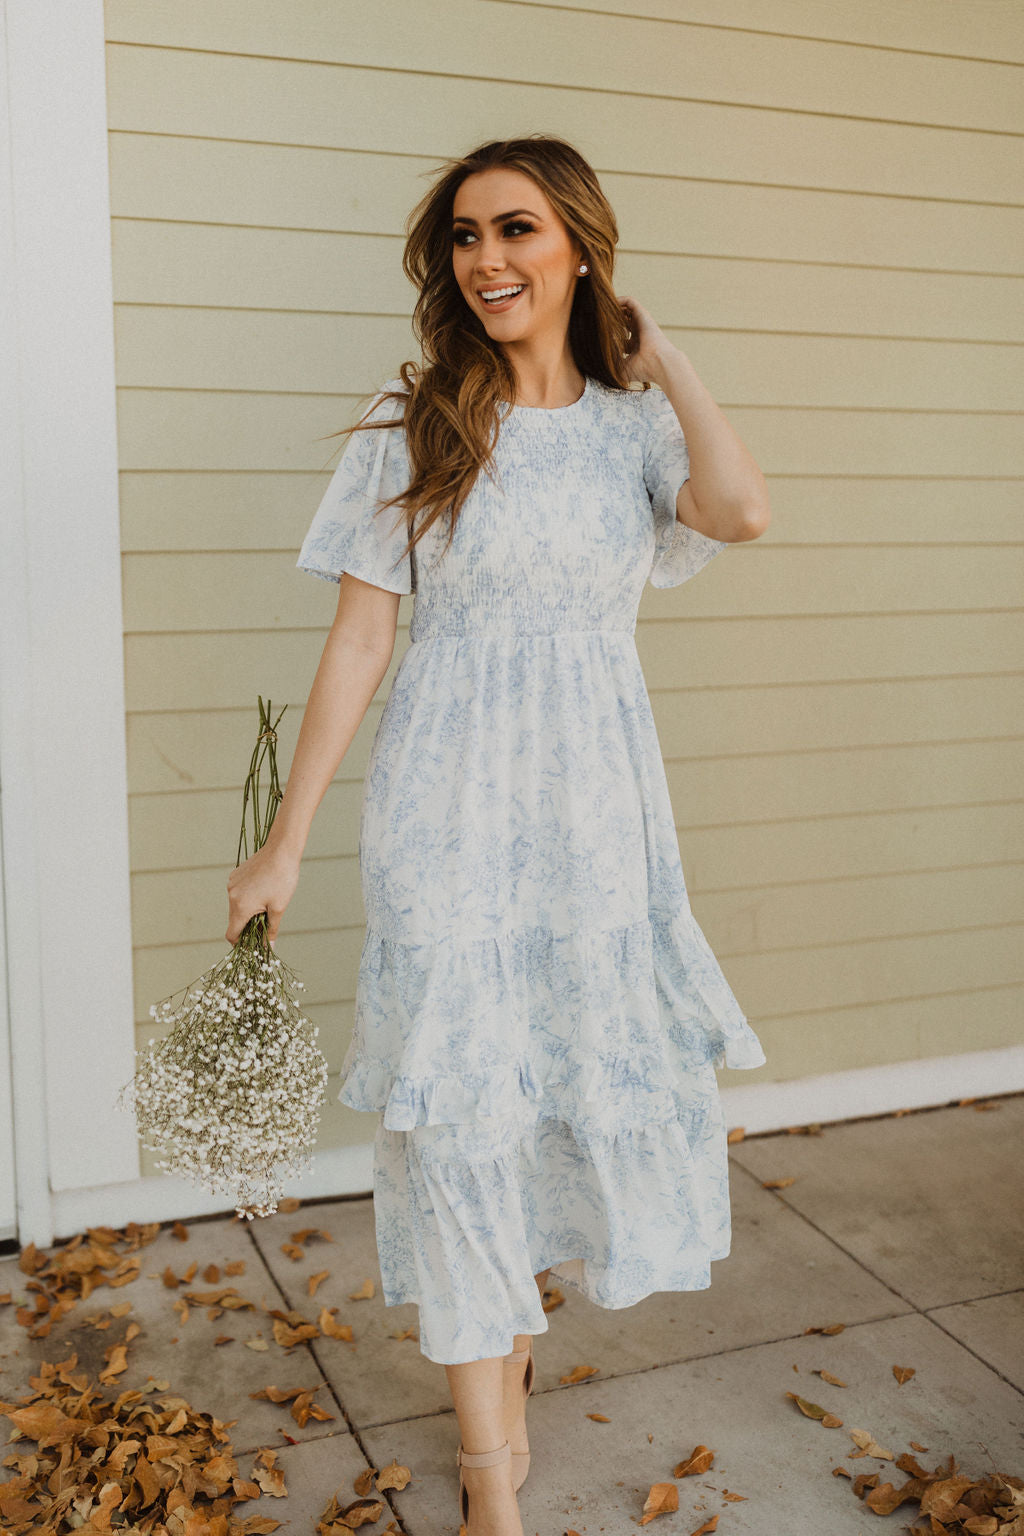 THE NOTHING BUT BLUE SKIES FLORAL MIDI DRESS IN LIGHT BLUE